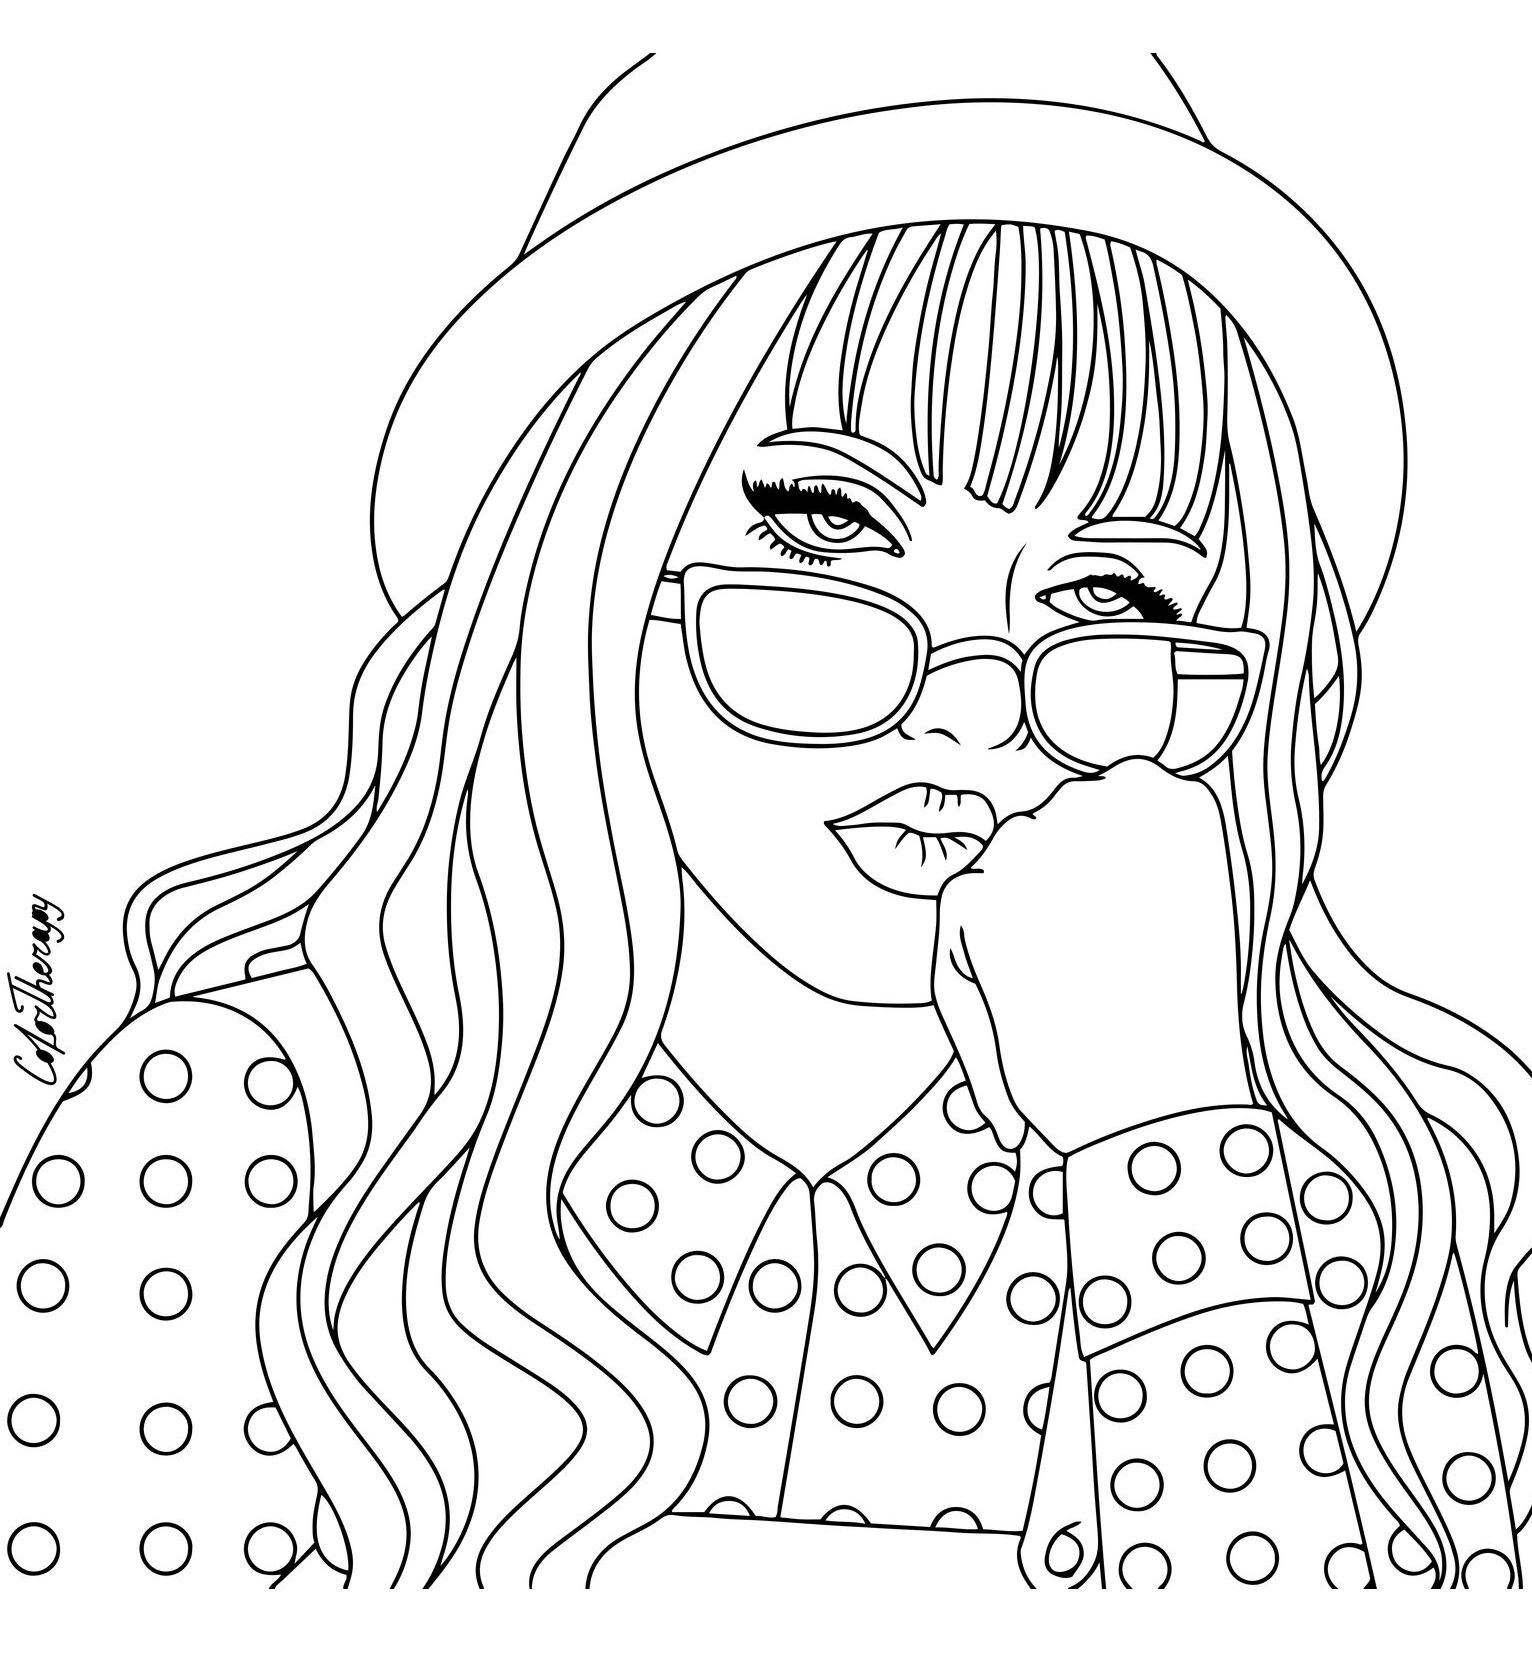 blank coloring sheets get this kids39 printable blank coloring pages lc75f blank sheets coloring